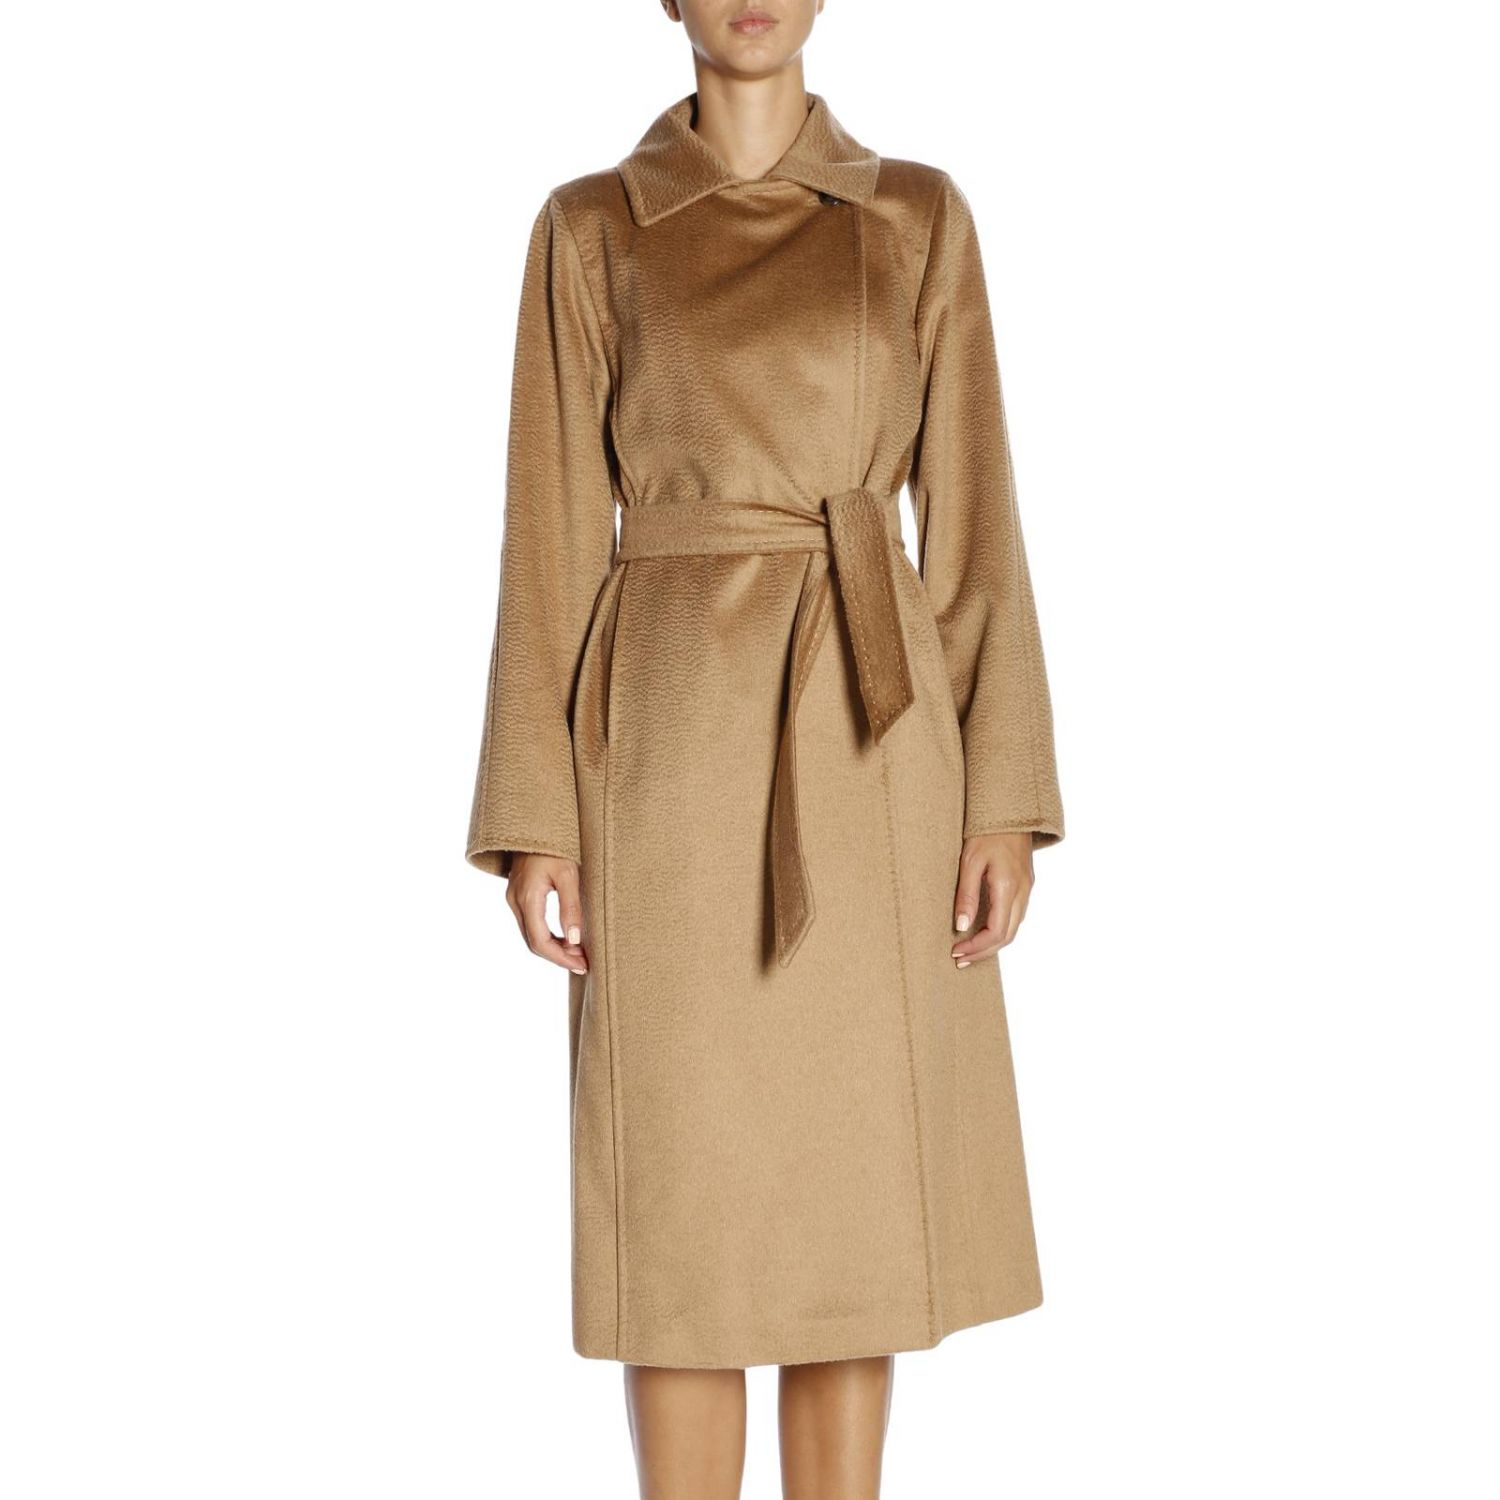 Compare Dress Women Max Mara 8286603 Miscellaneous prices and Buy ... e24481af95043